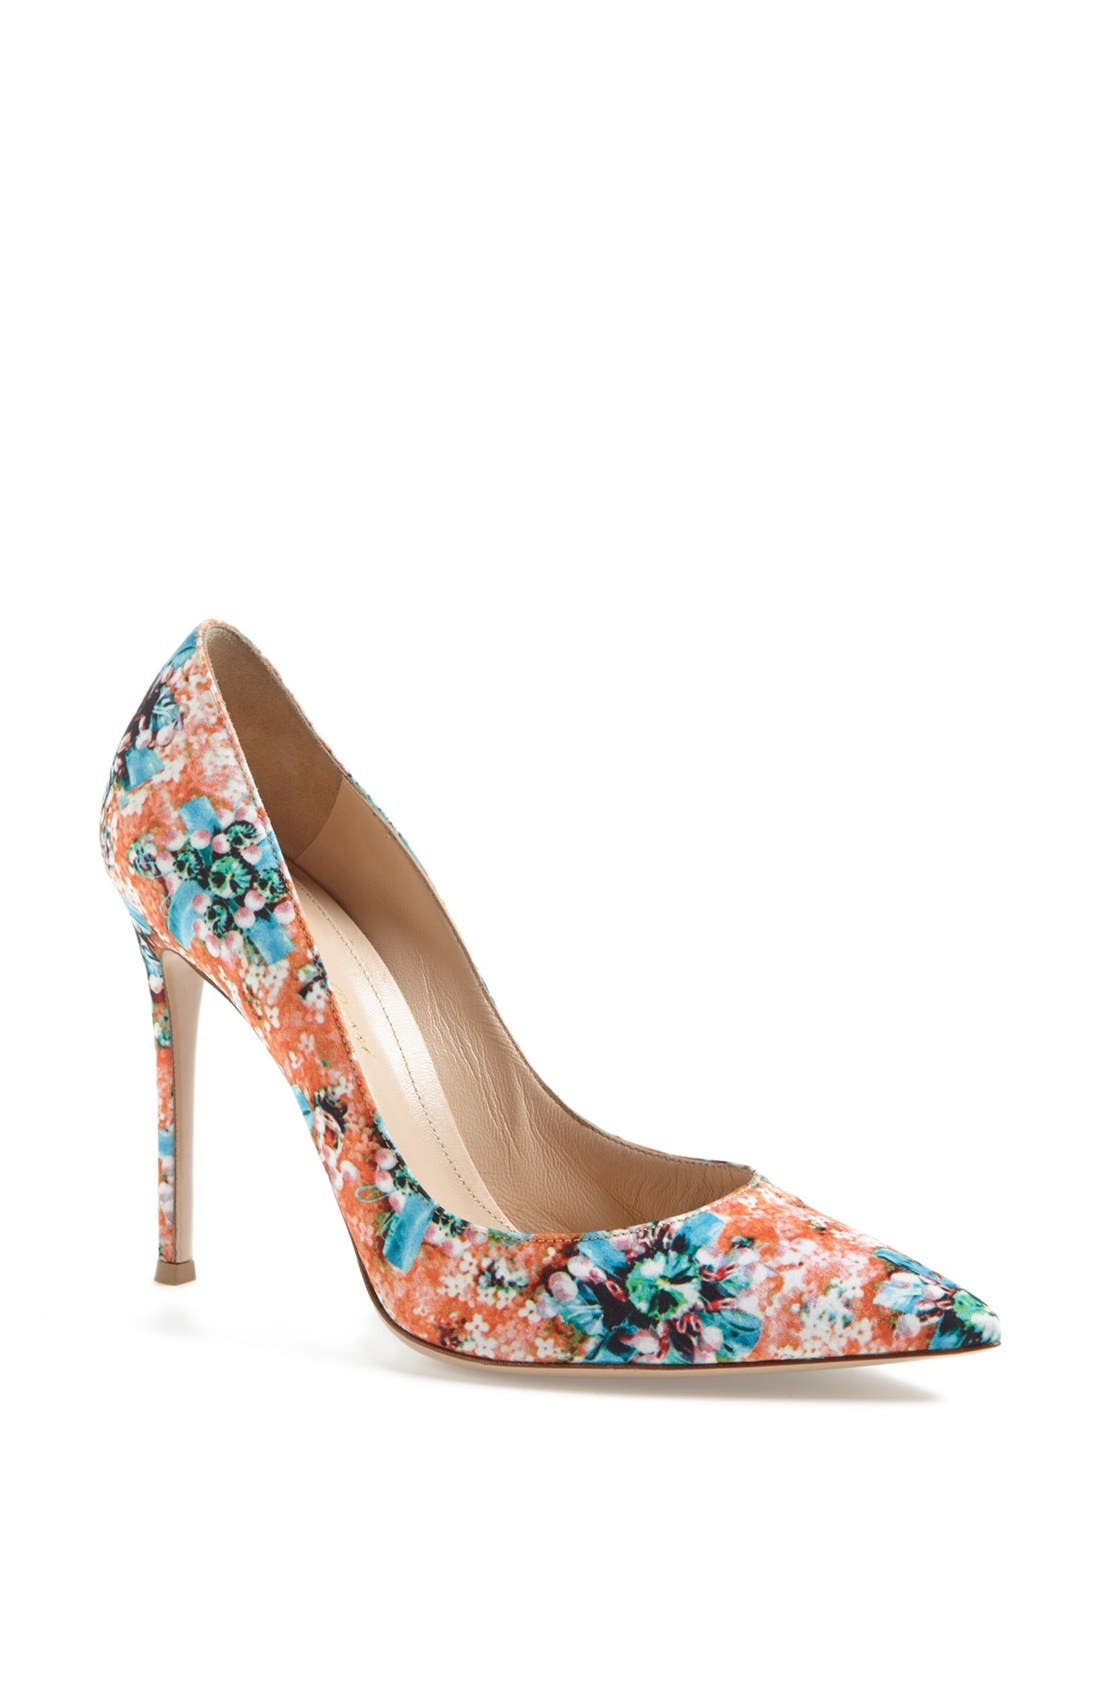 Main Image - Mary Katrantzou 'Lisa' Pump